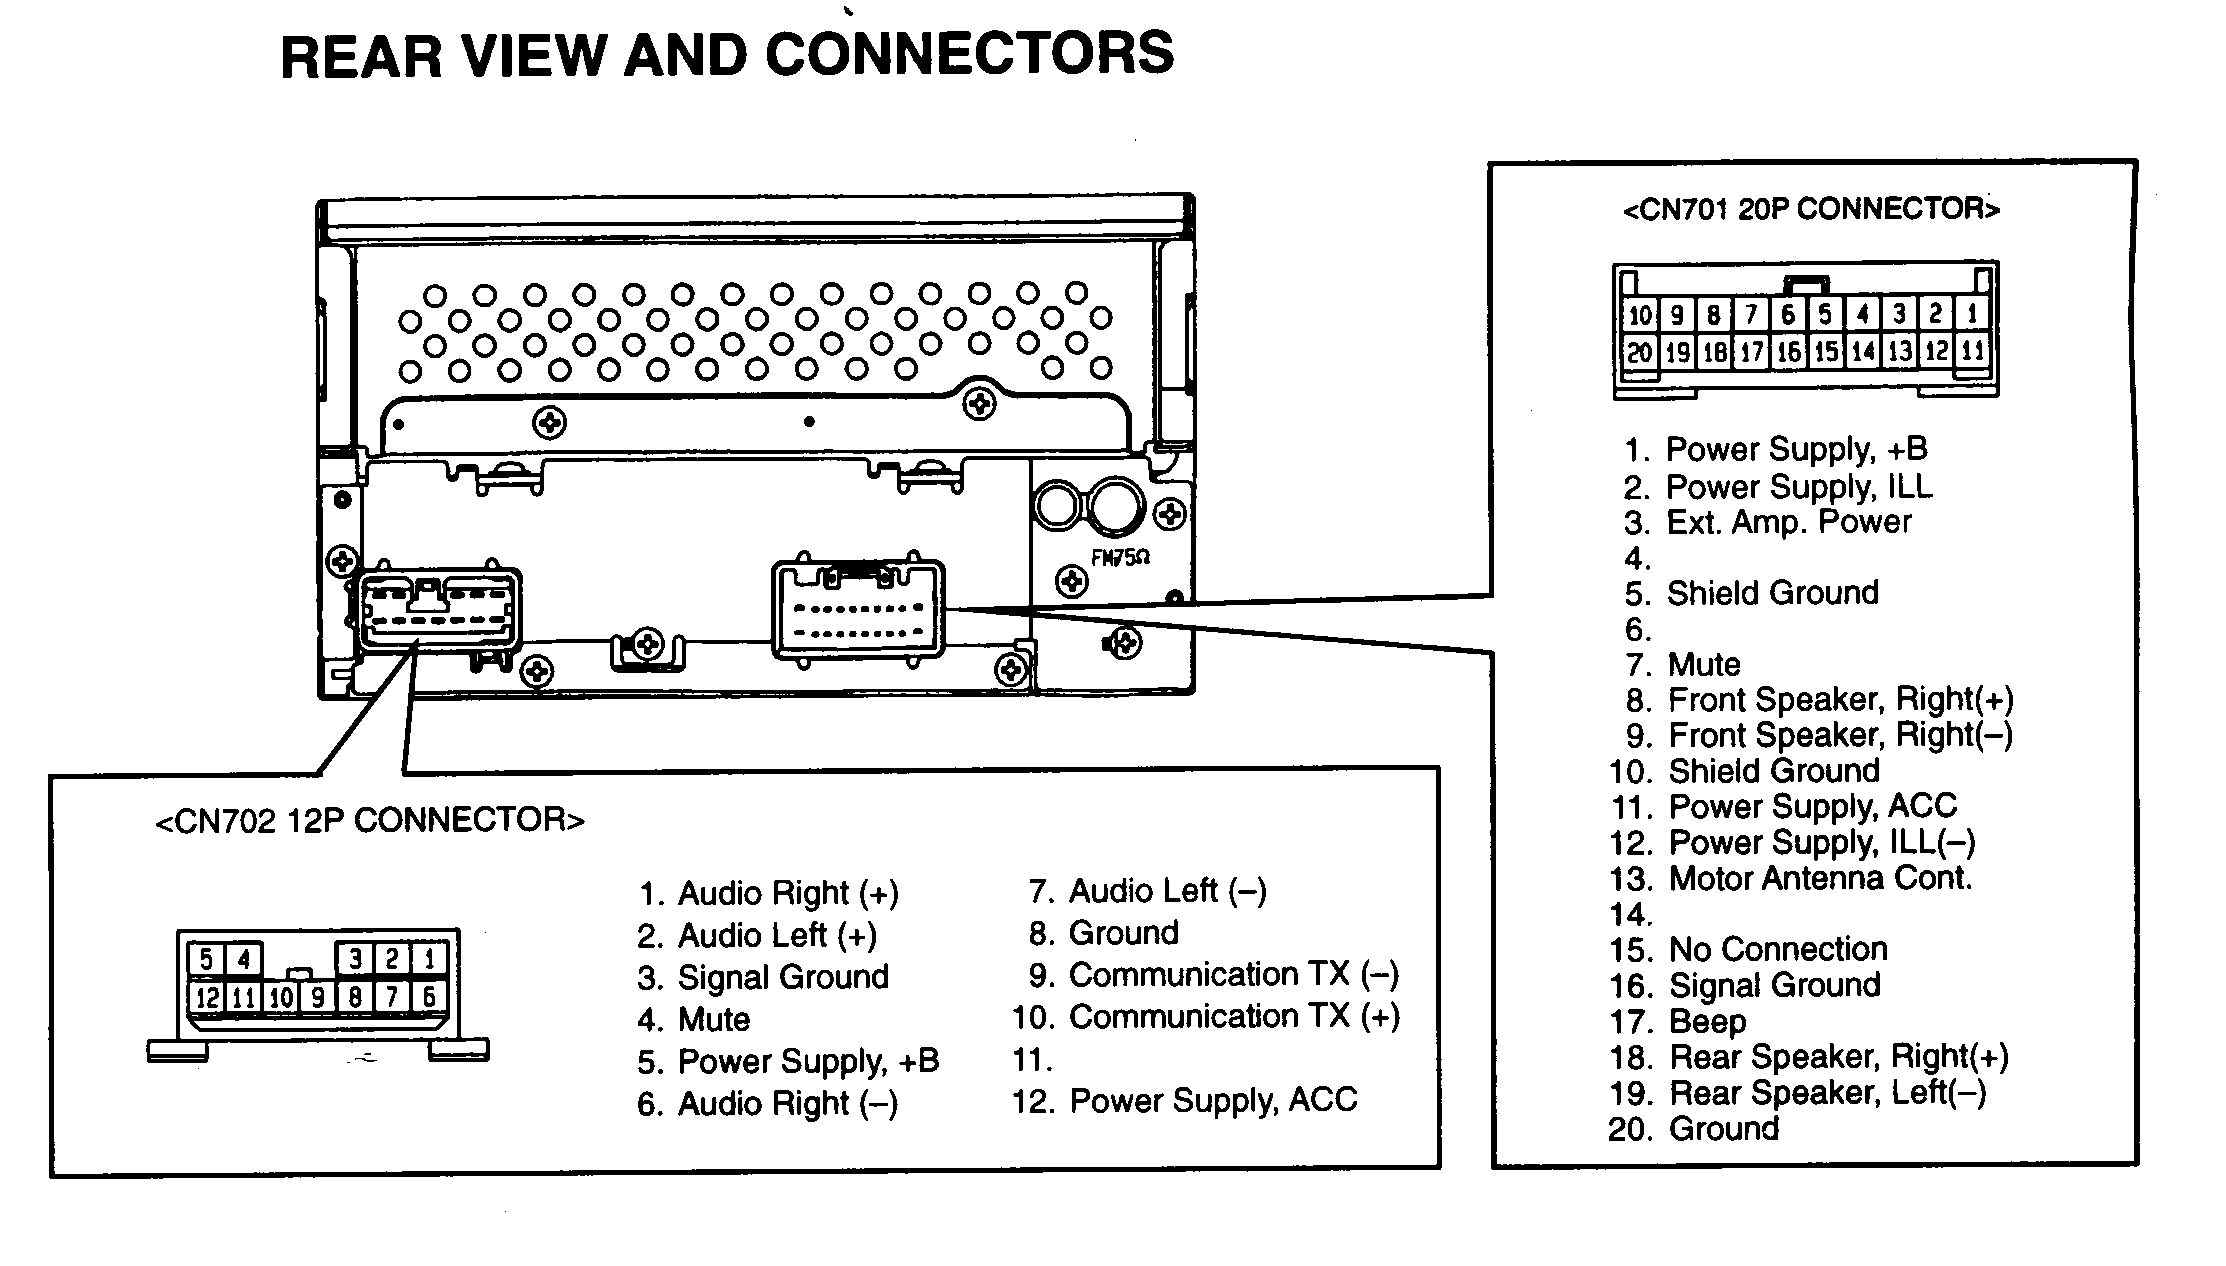 WireHarnessToyota03210201 toyota stereo wiring diagram toyota wiring diagrams instruction 2000 toyota avalon stereo wiring diagram at edmiracle.co